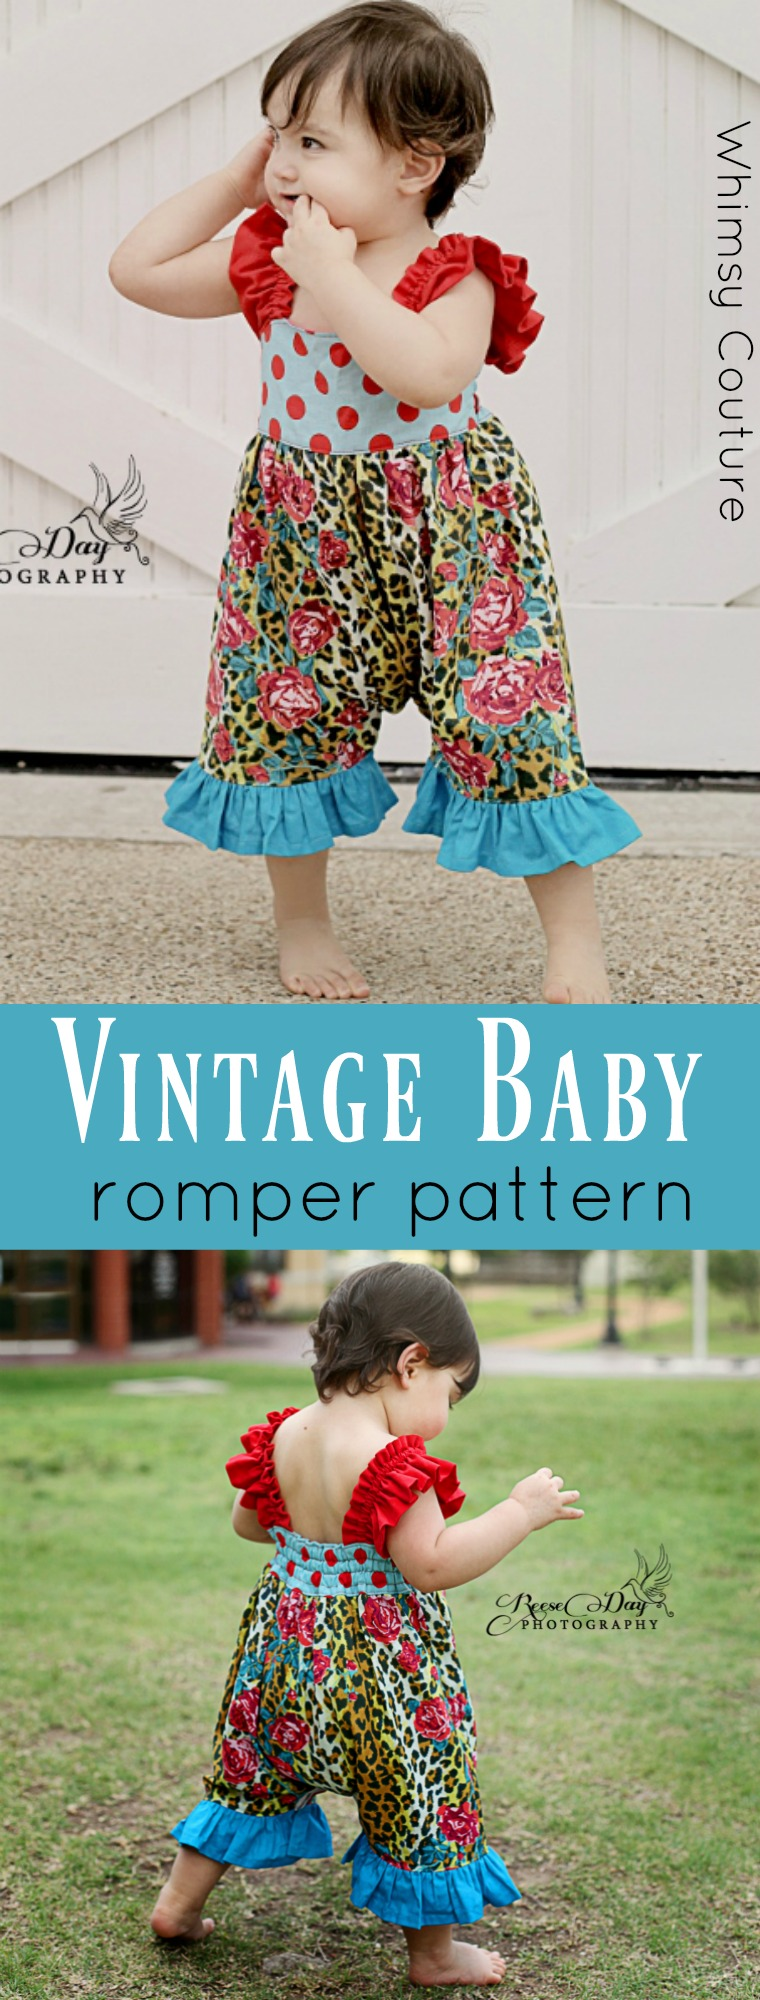 Vintage Baby Romper Sewing Pattern Whimsy Couture Sewing